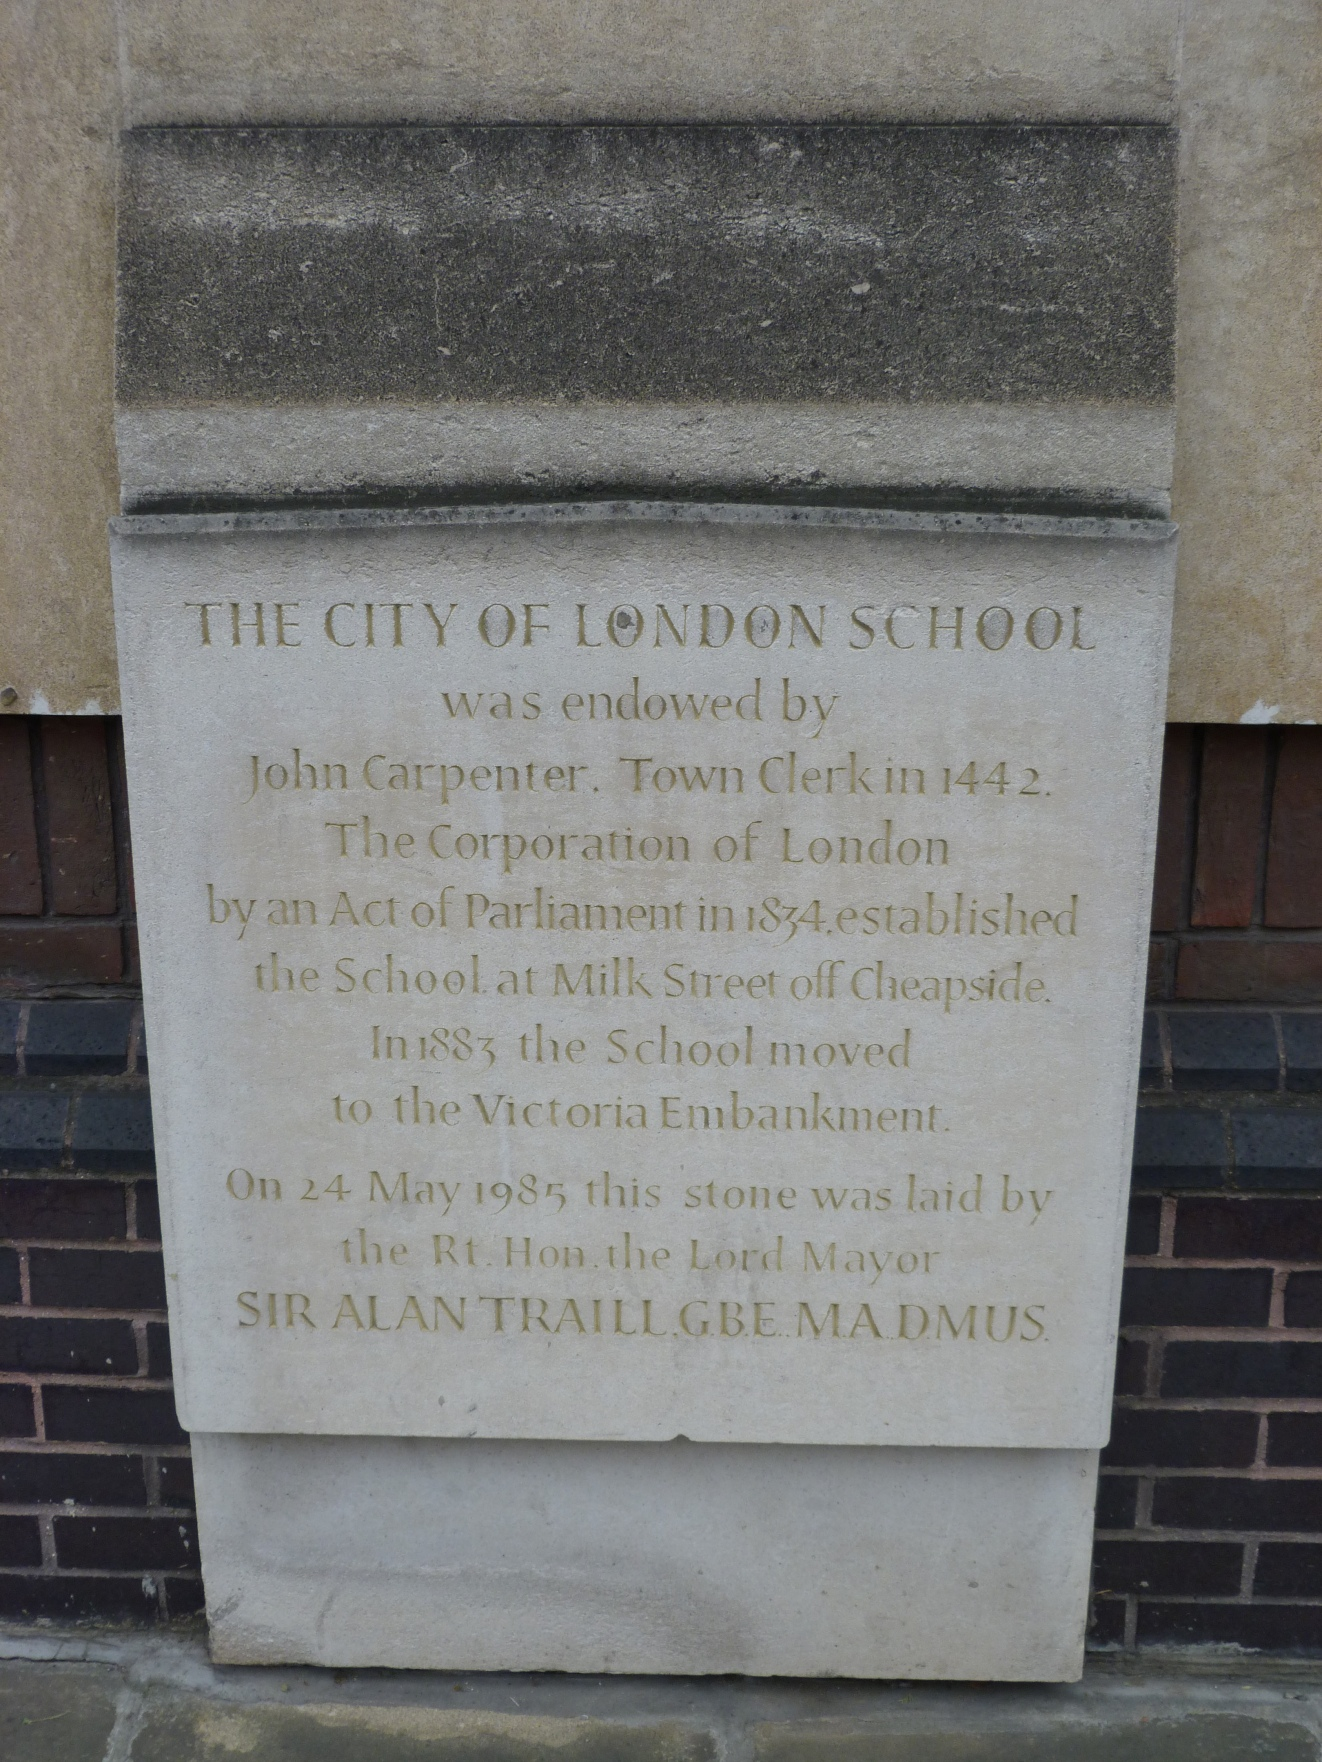 City of London School (2) - Copy.JPG